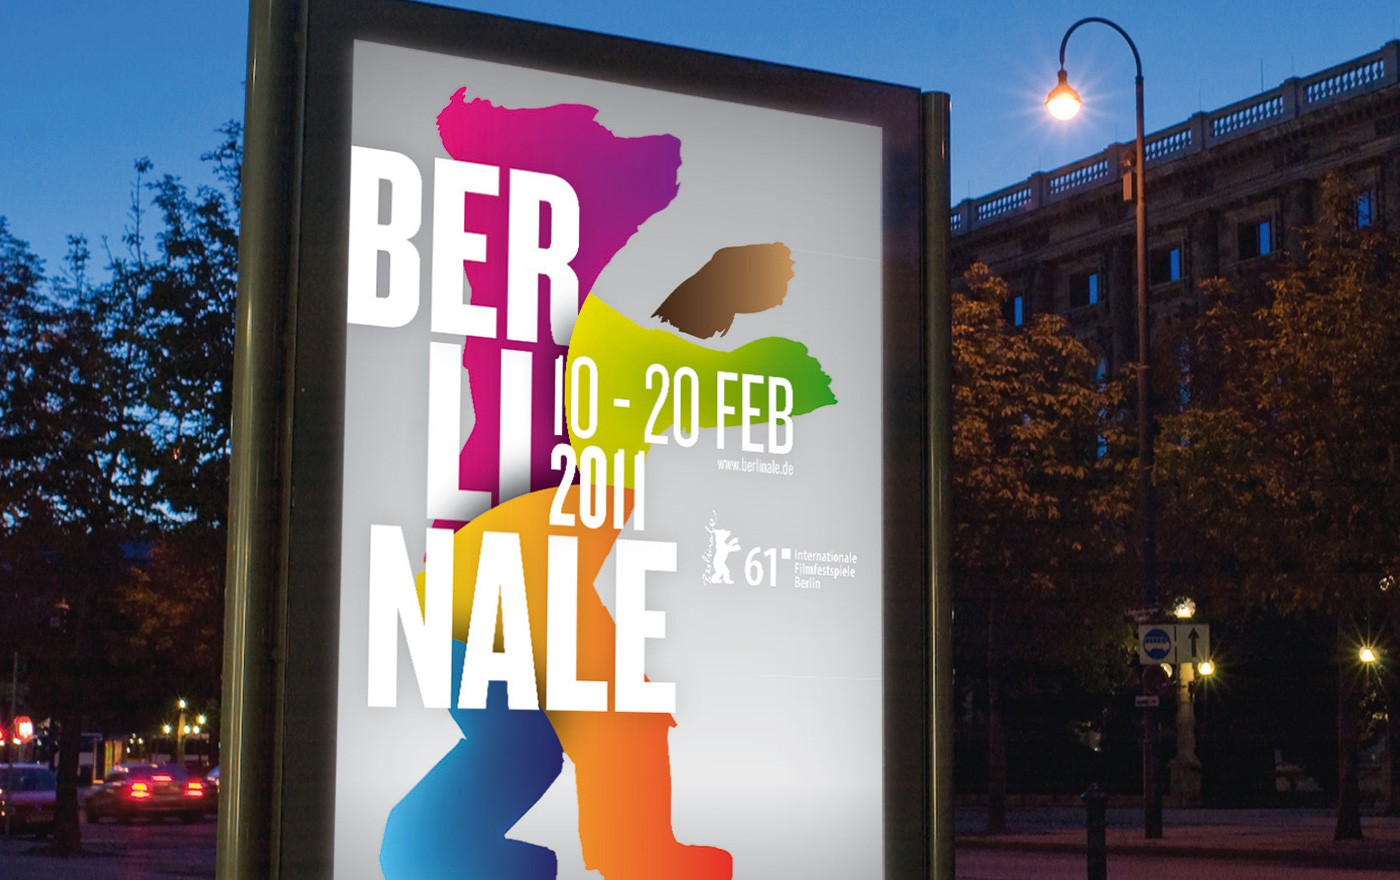 Berlinale Artwork by upstruct